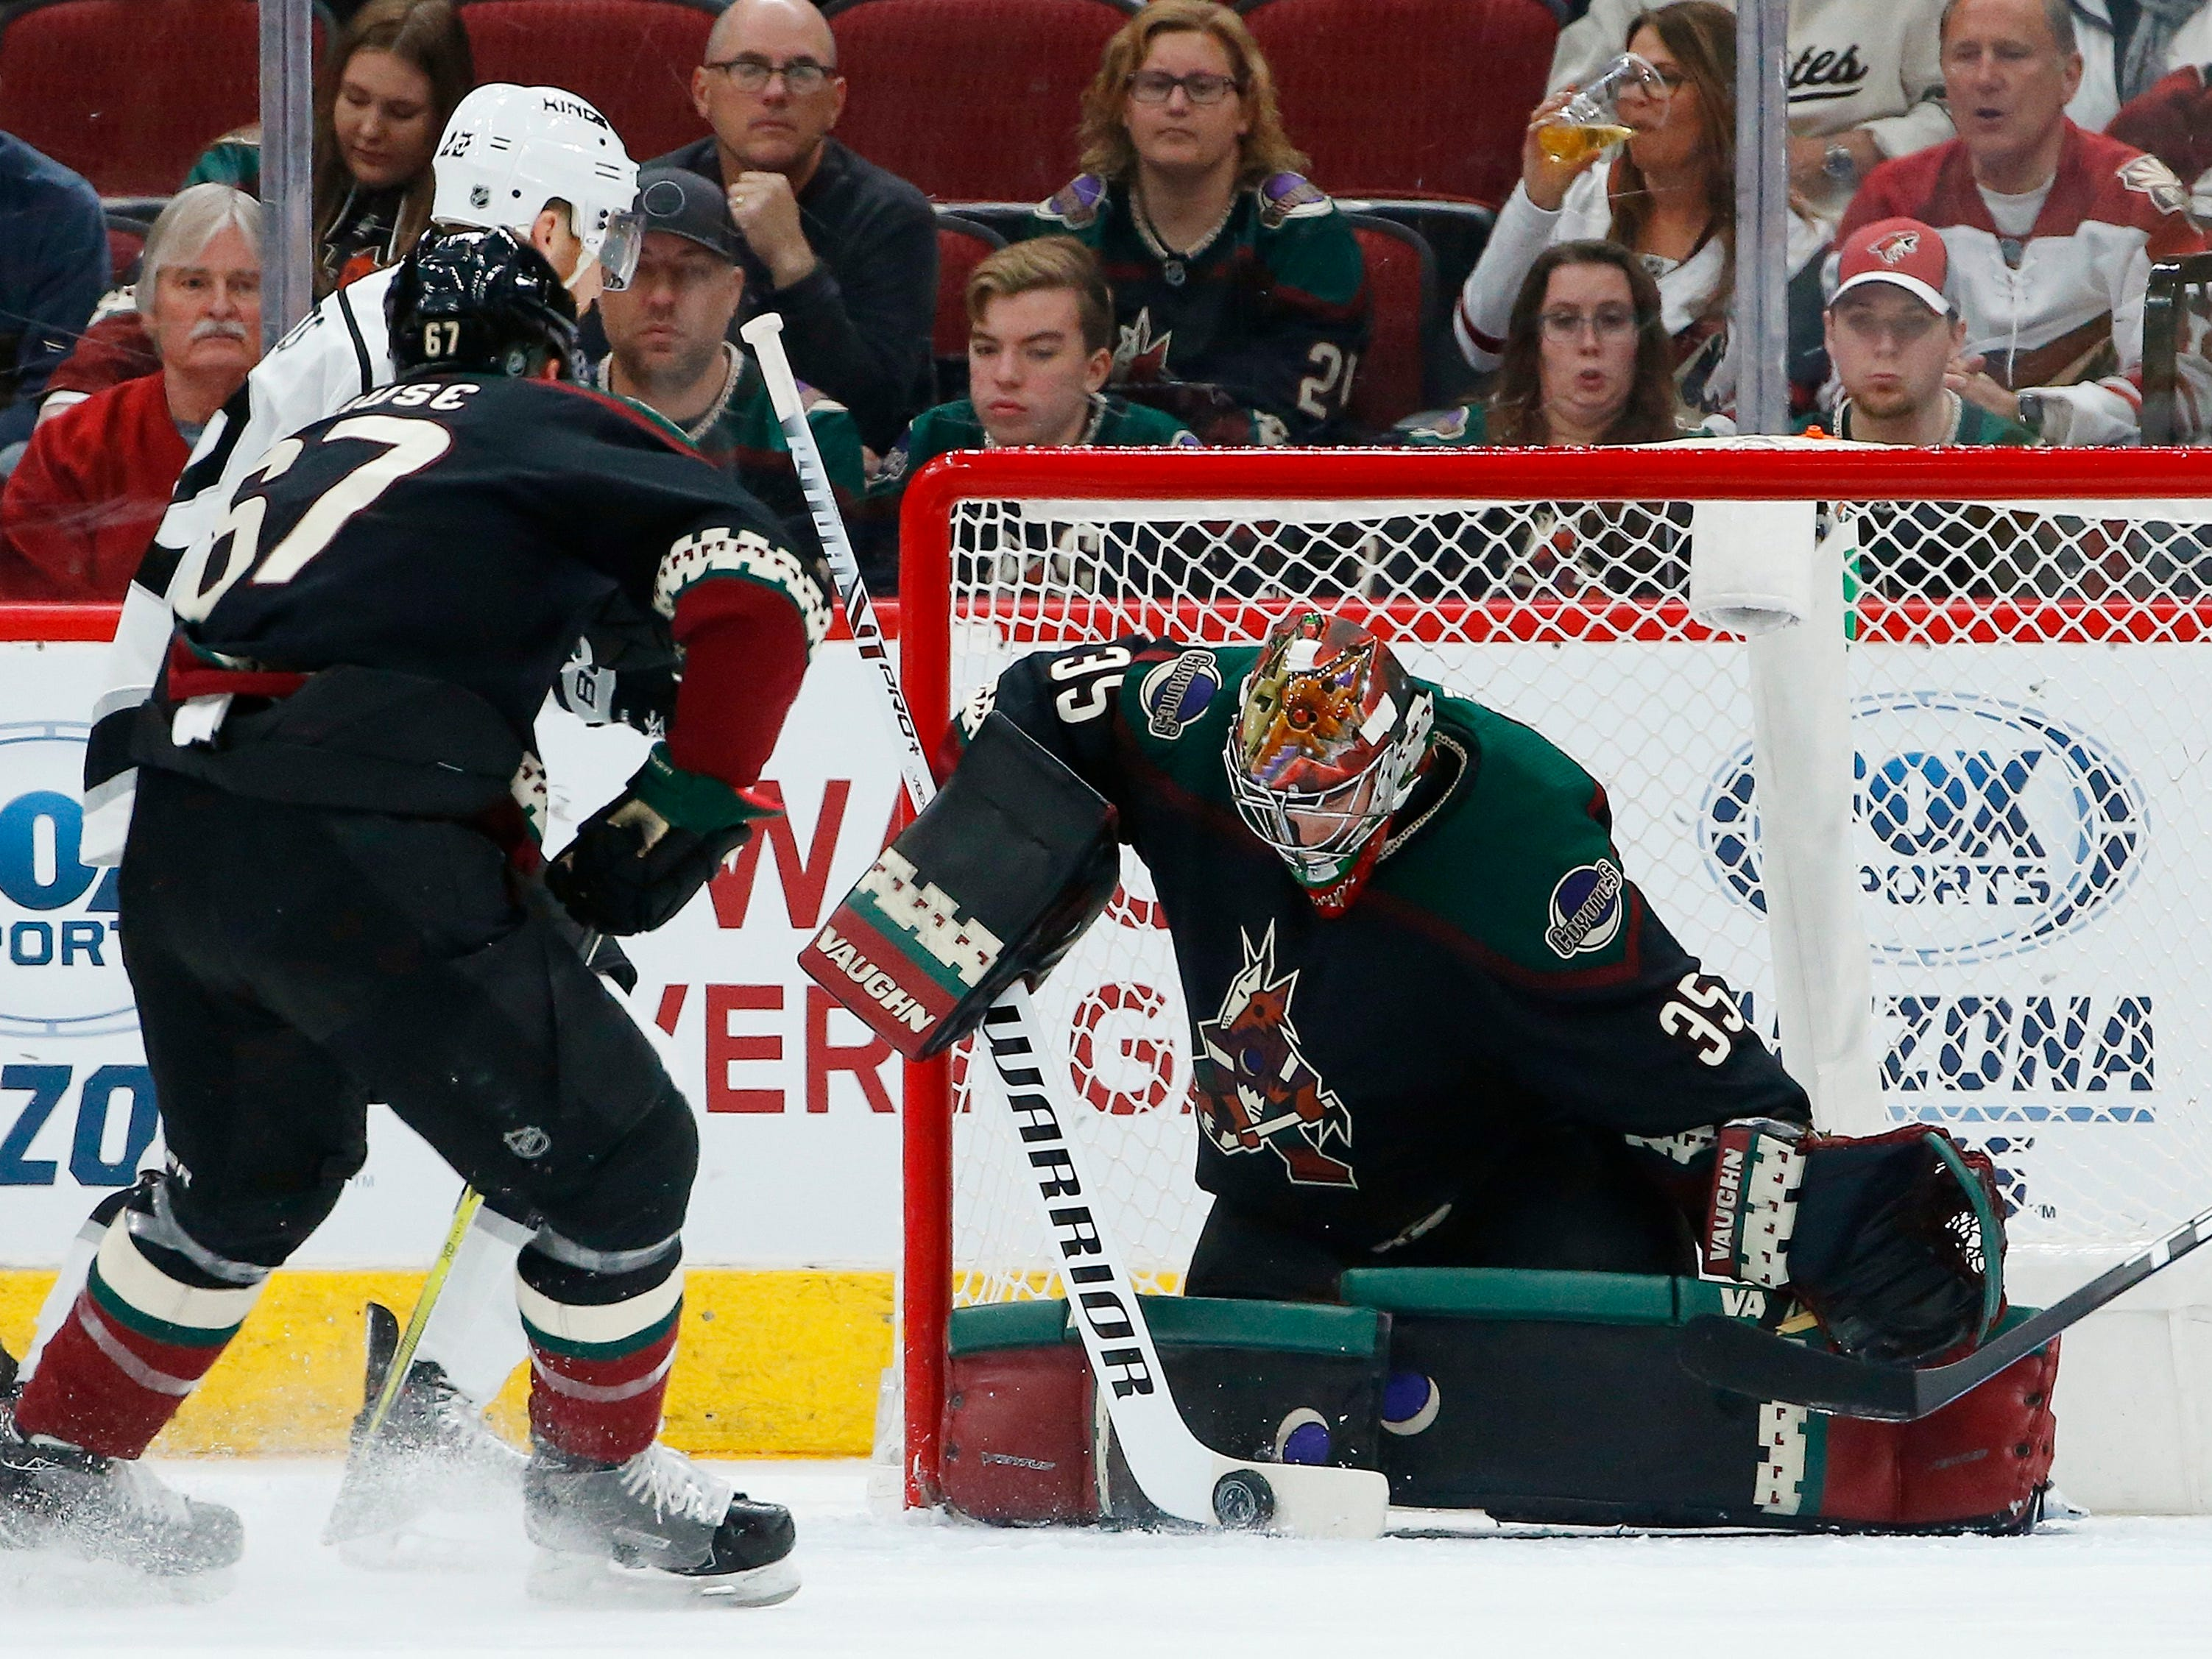 Arizona Coyotes goaltender Darcy Kuemper (35) makes a save on a shot by Los Angeles Kings center Trevor Lewis, back left, as Coyotes left wing Lawson Crouse (67) defends during the second period of an NHL hockey game Saturday, March 9, 2019, in Glendale, Ariz.